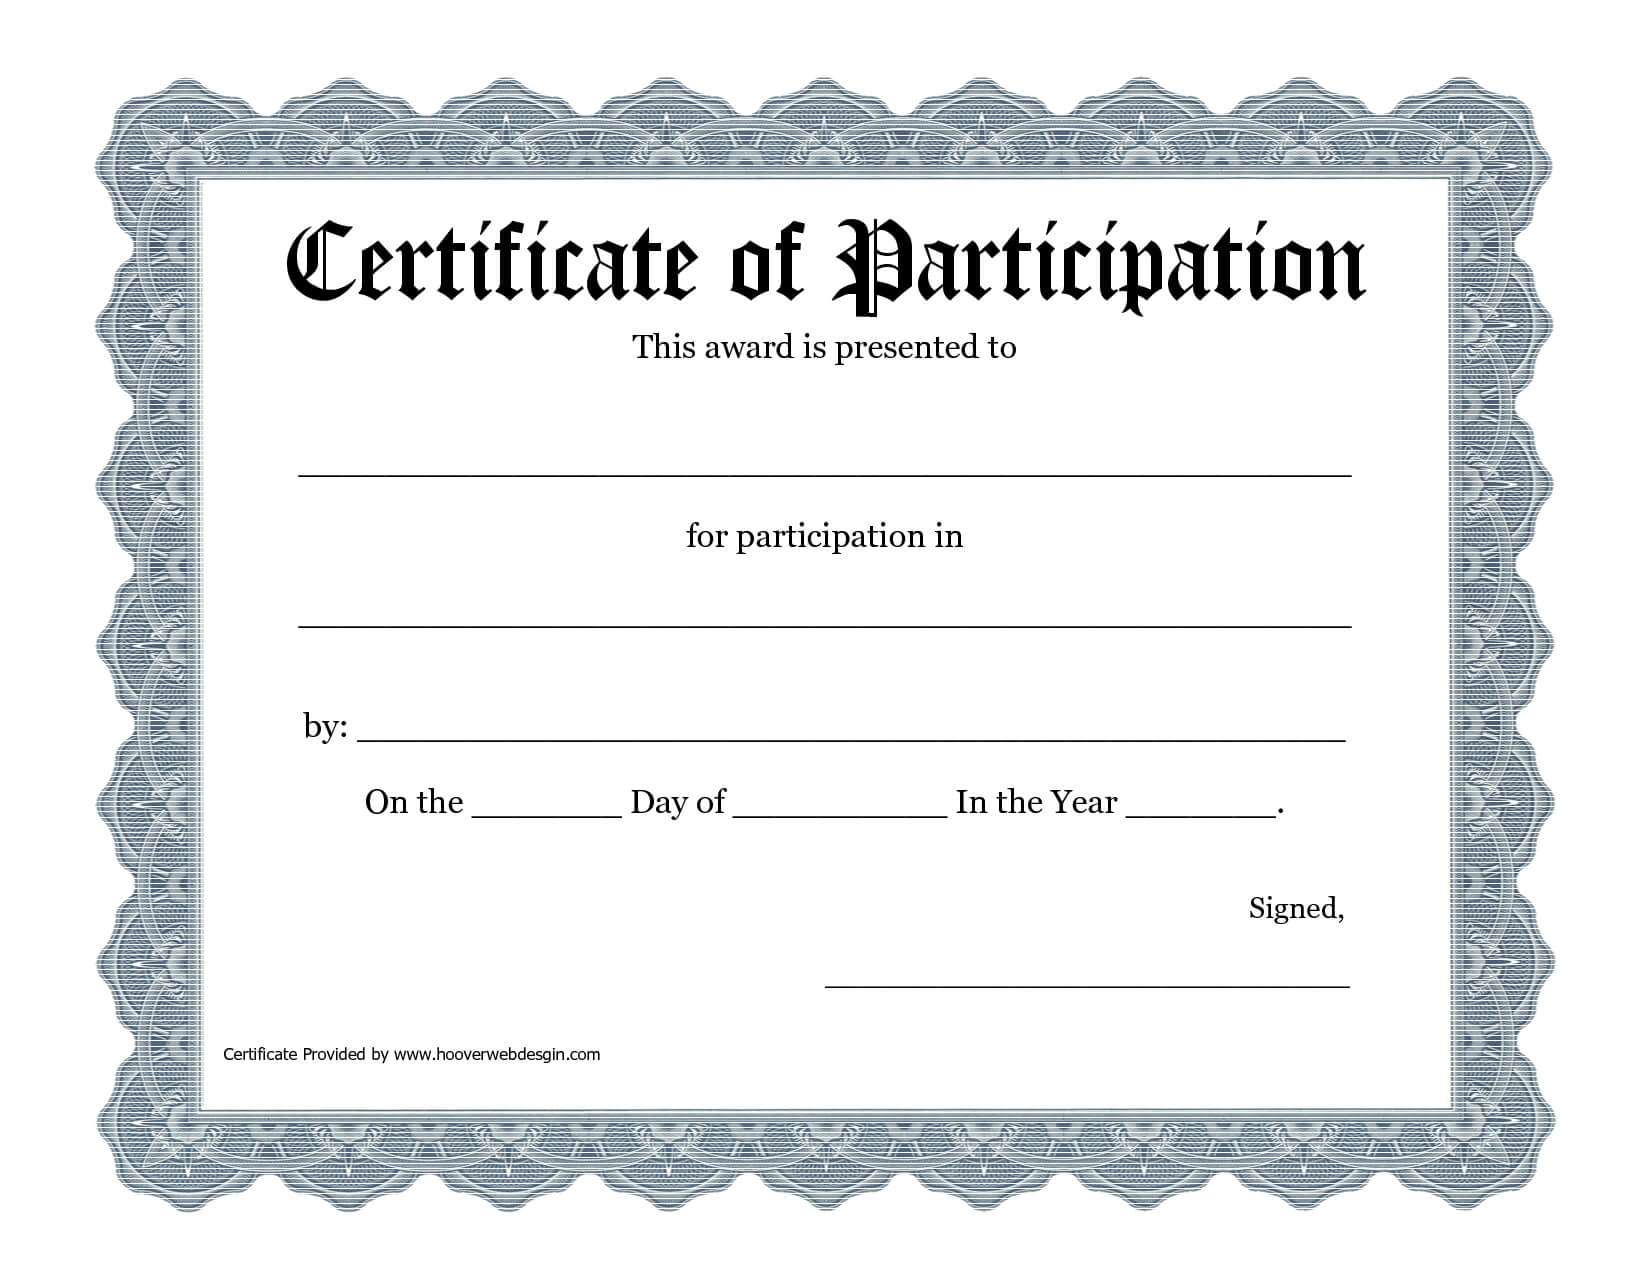 Free Printable Award Certificate Template - Bing Images intended for Free Funny Certificate Templates For Word